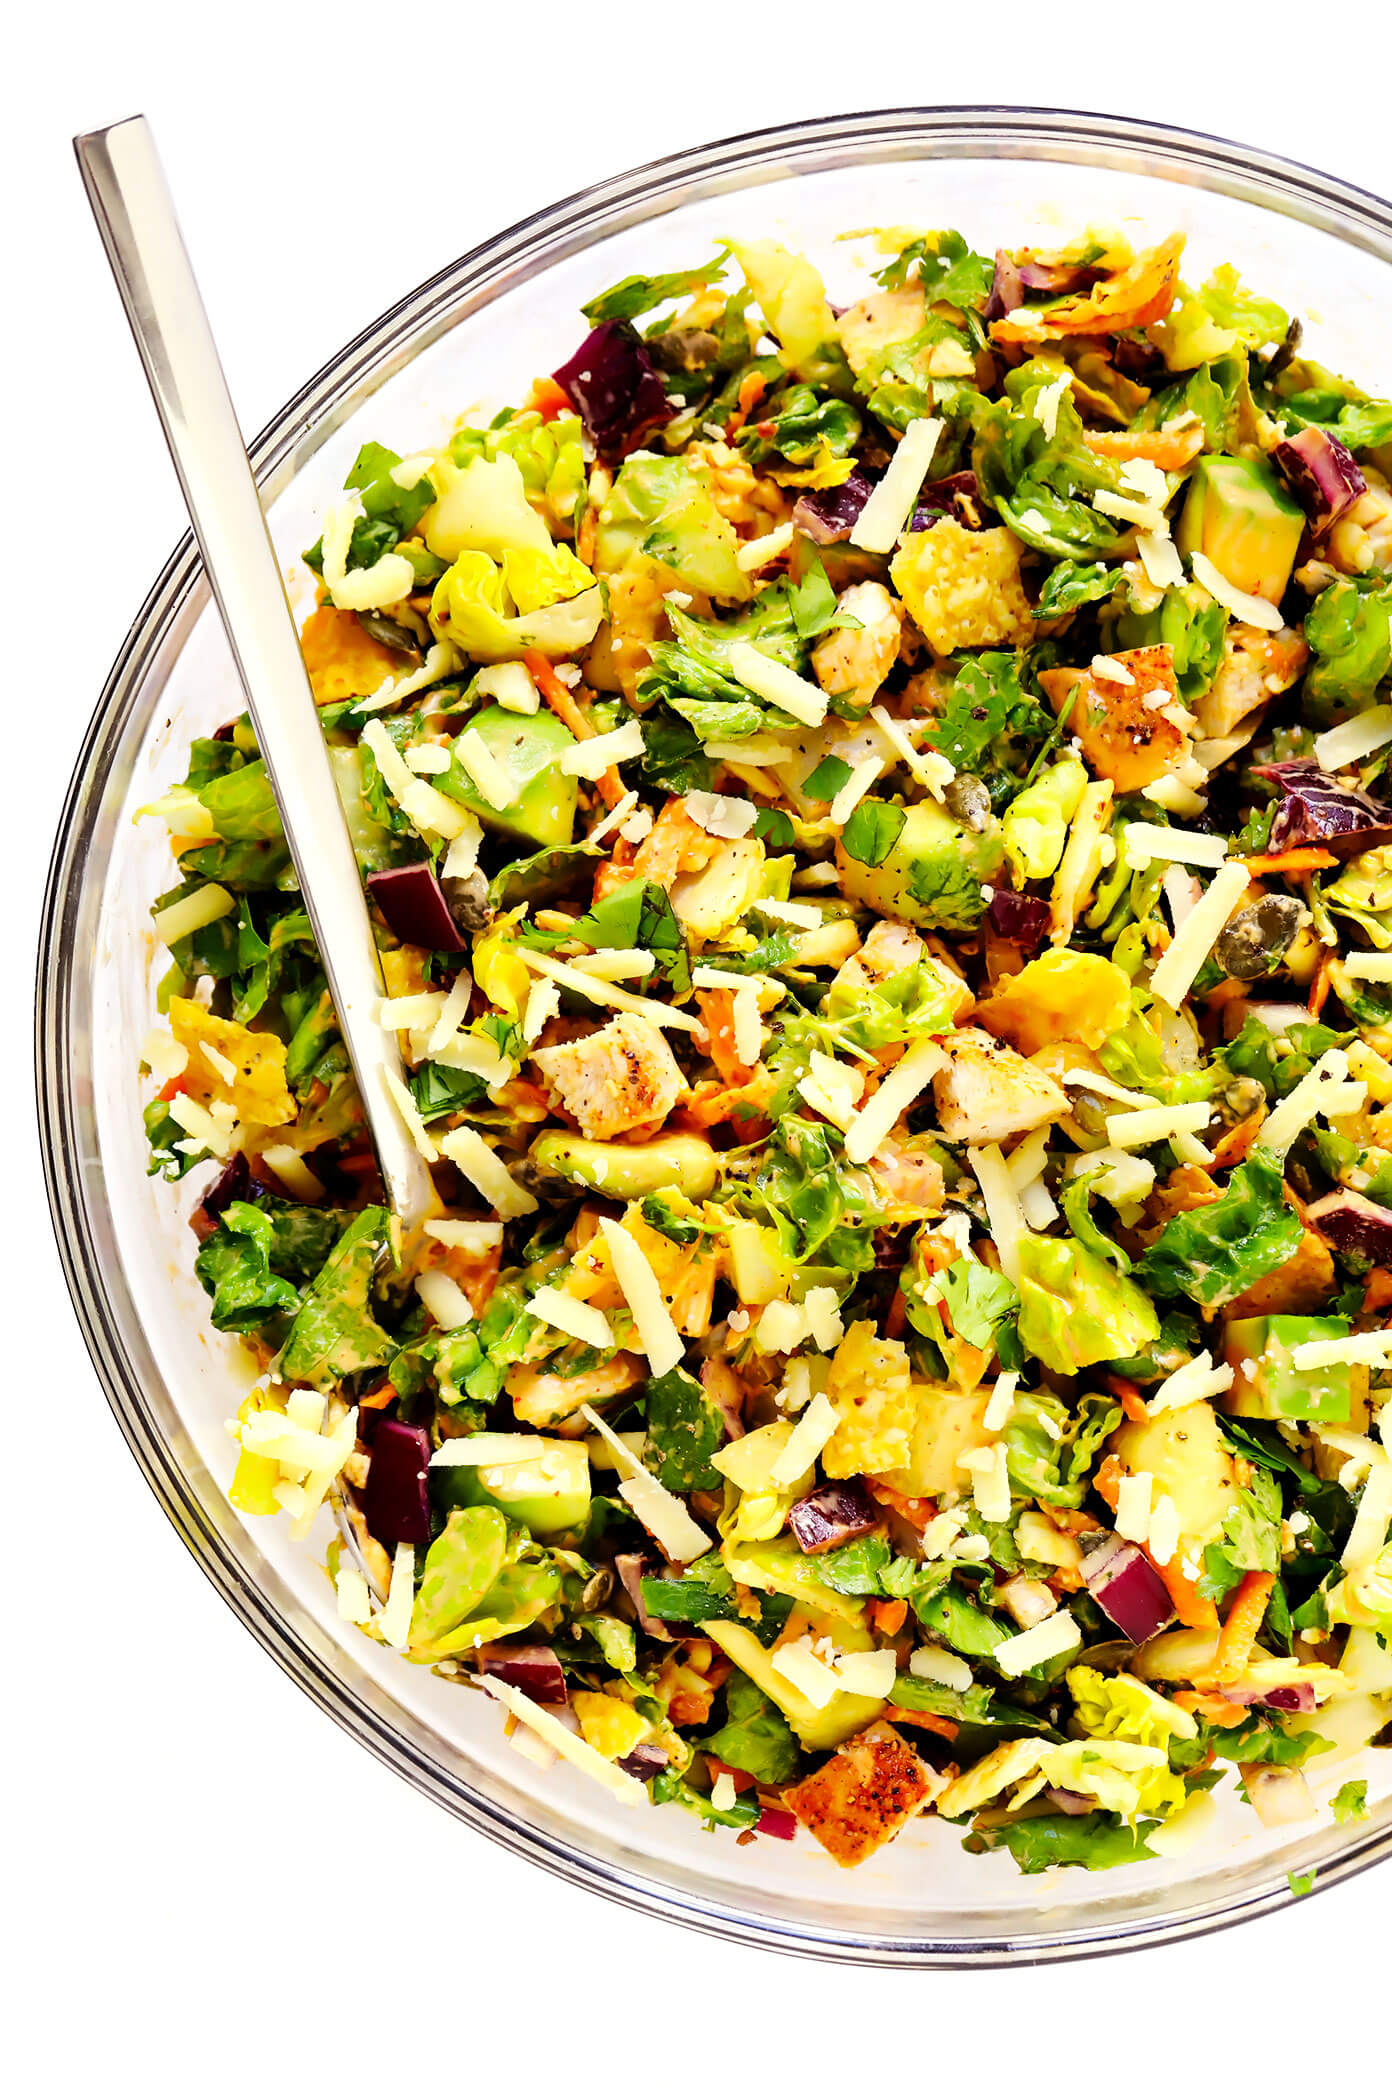 Chipotle Chicken Chopped Salad in Mixing Bowl